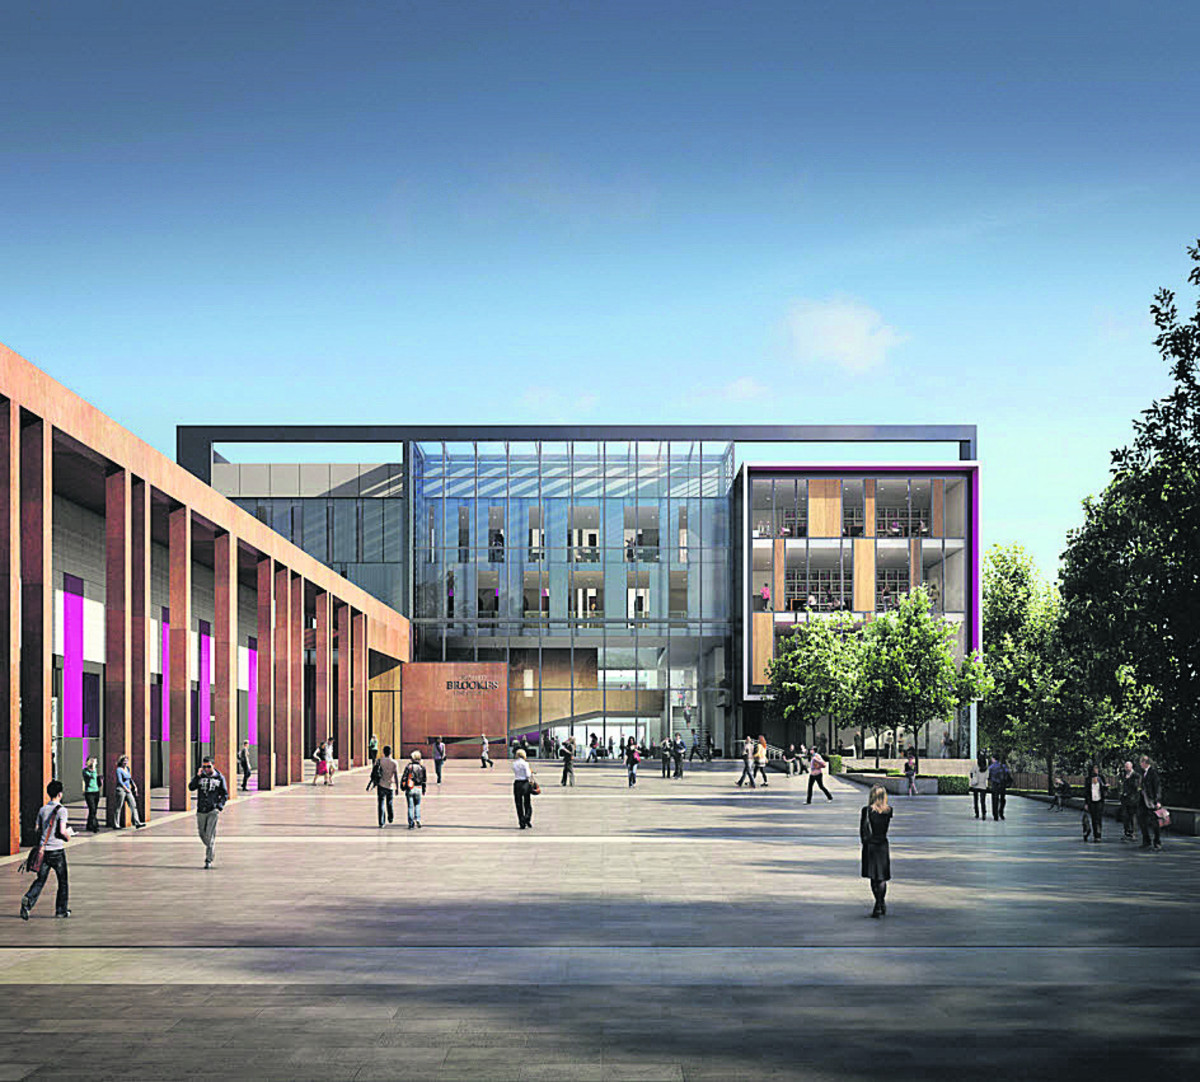 An artist's impression of the entrance to the new John Henry Brookes Building main entrance at Oxford Brookes University's Headington campus